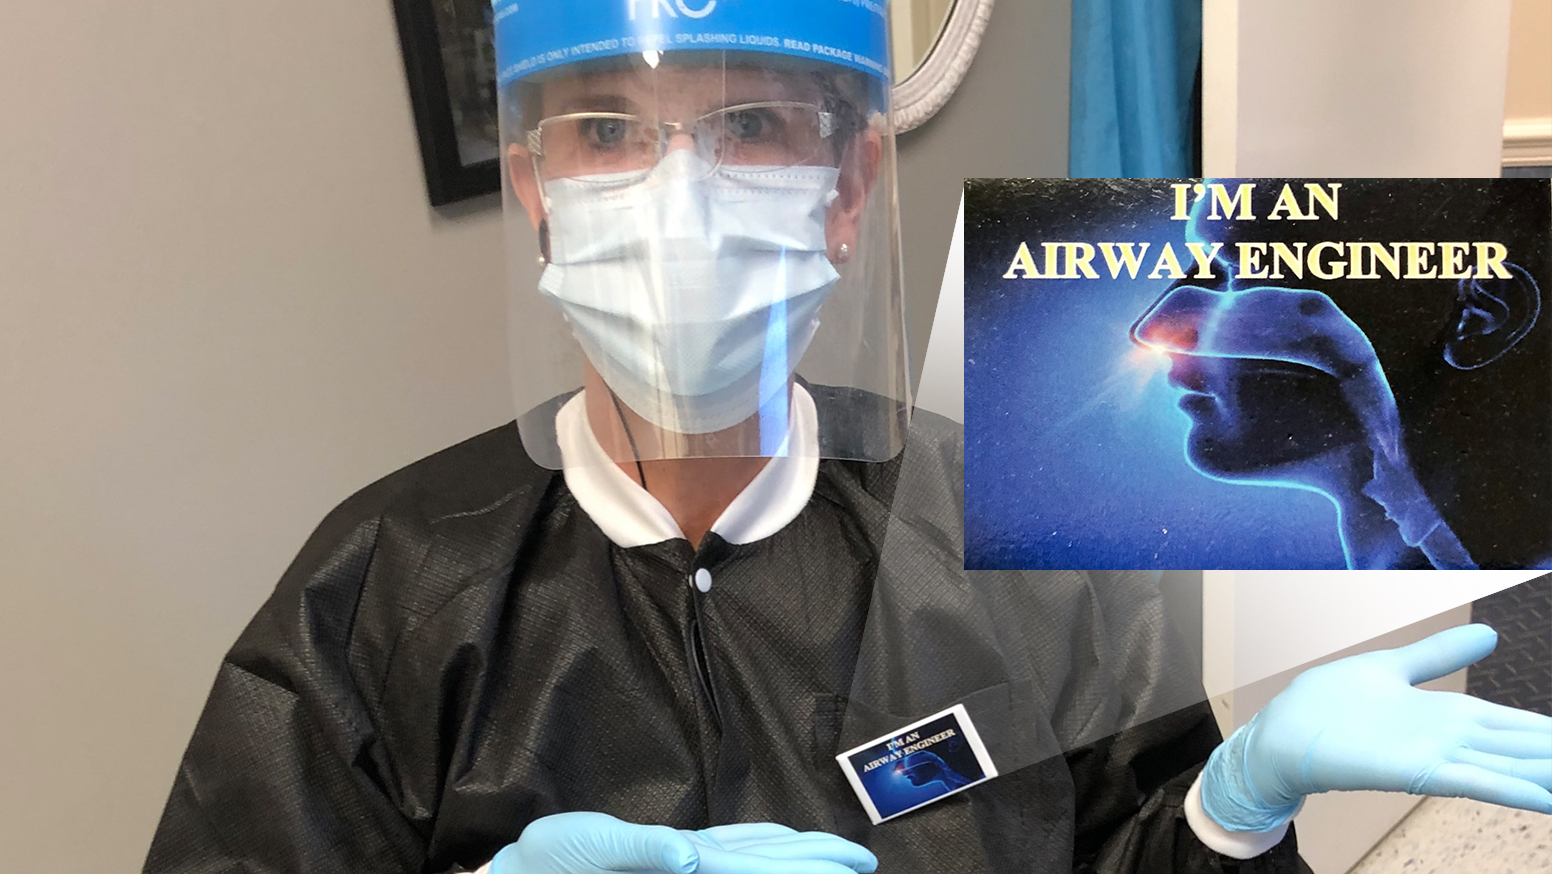 Tammy Airway Engineer